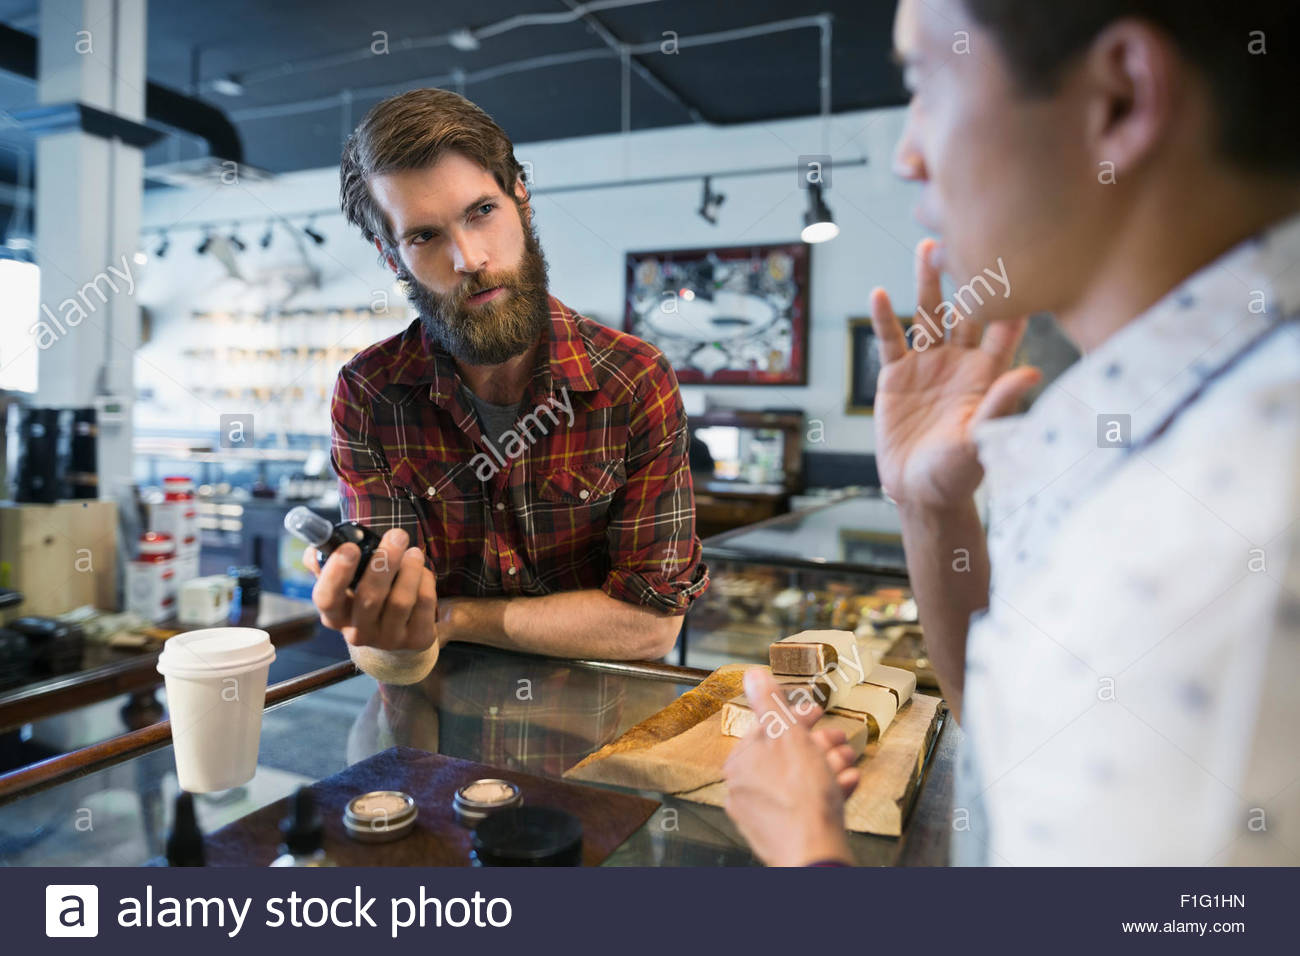 Worker explaining after shave spray to customer shop - Stock Image